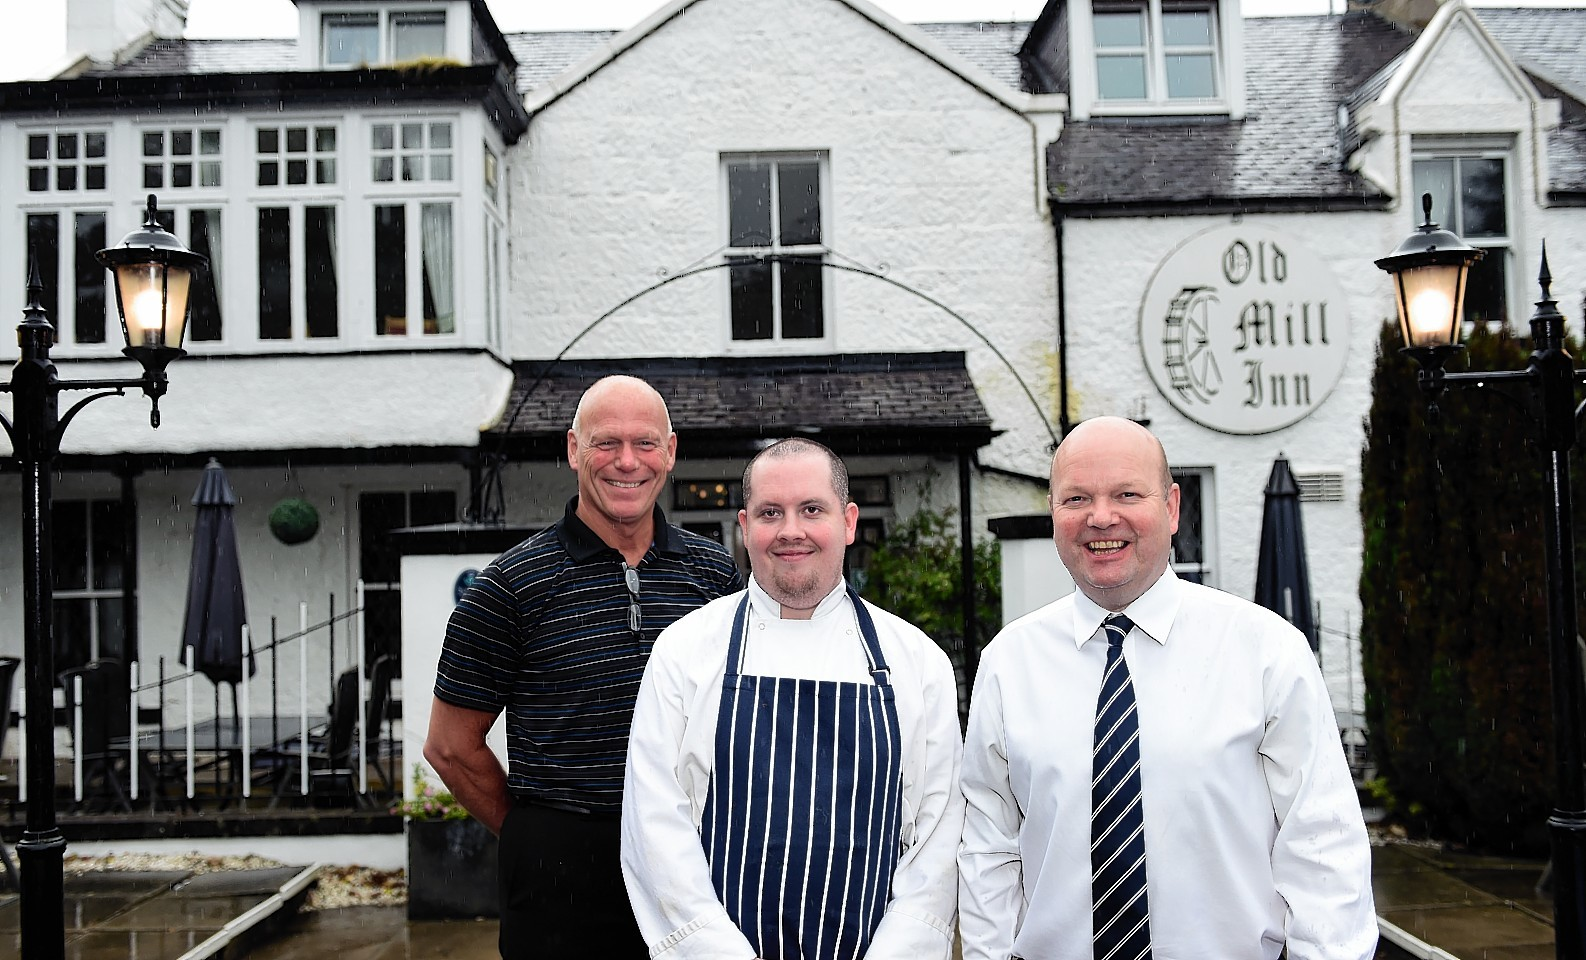 The Old Mill Inn, Maryculter, has reopened after almost a year.     Pictured - Owners Vic Sang (left) and Mike French (right) with head chef Darren McKay (middle) at the inn on it's first day back open.   Picture by Kami Thomson